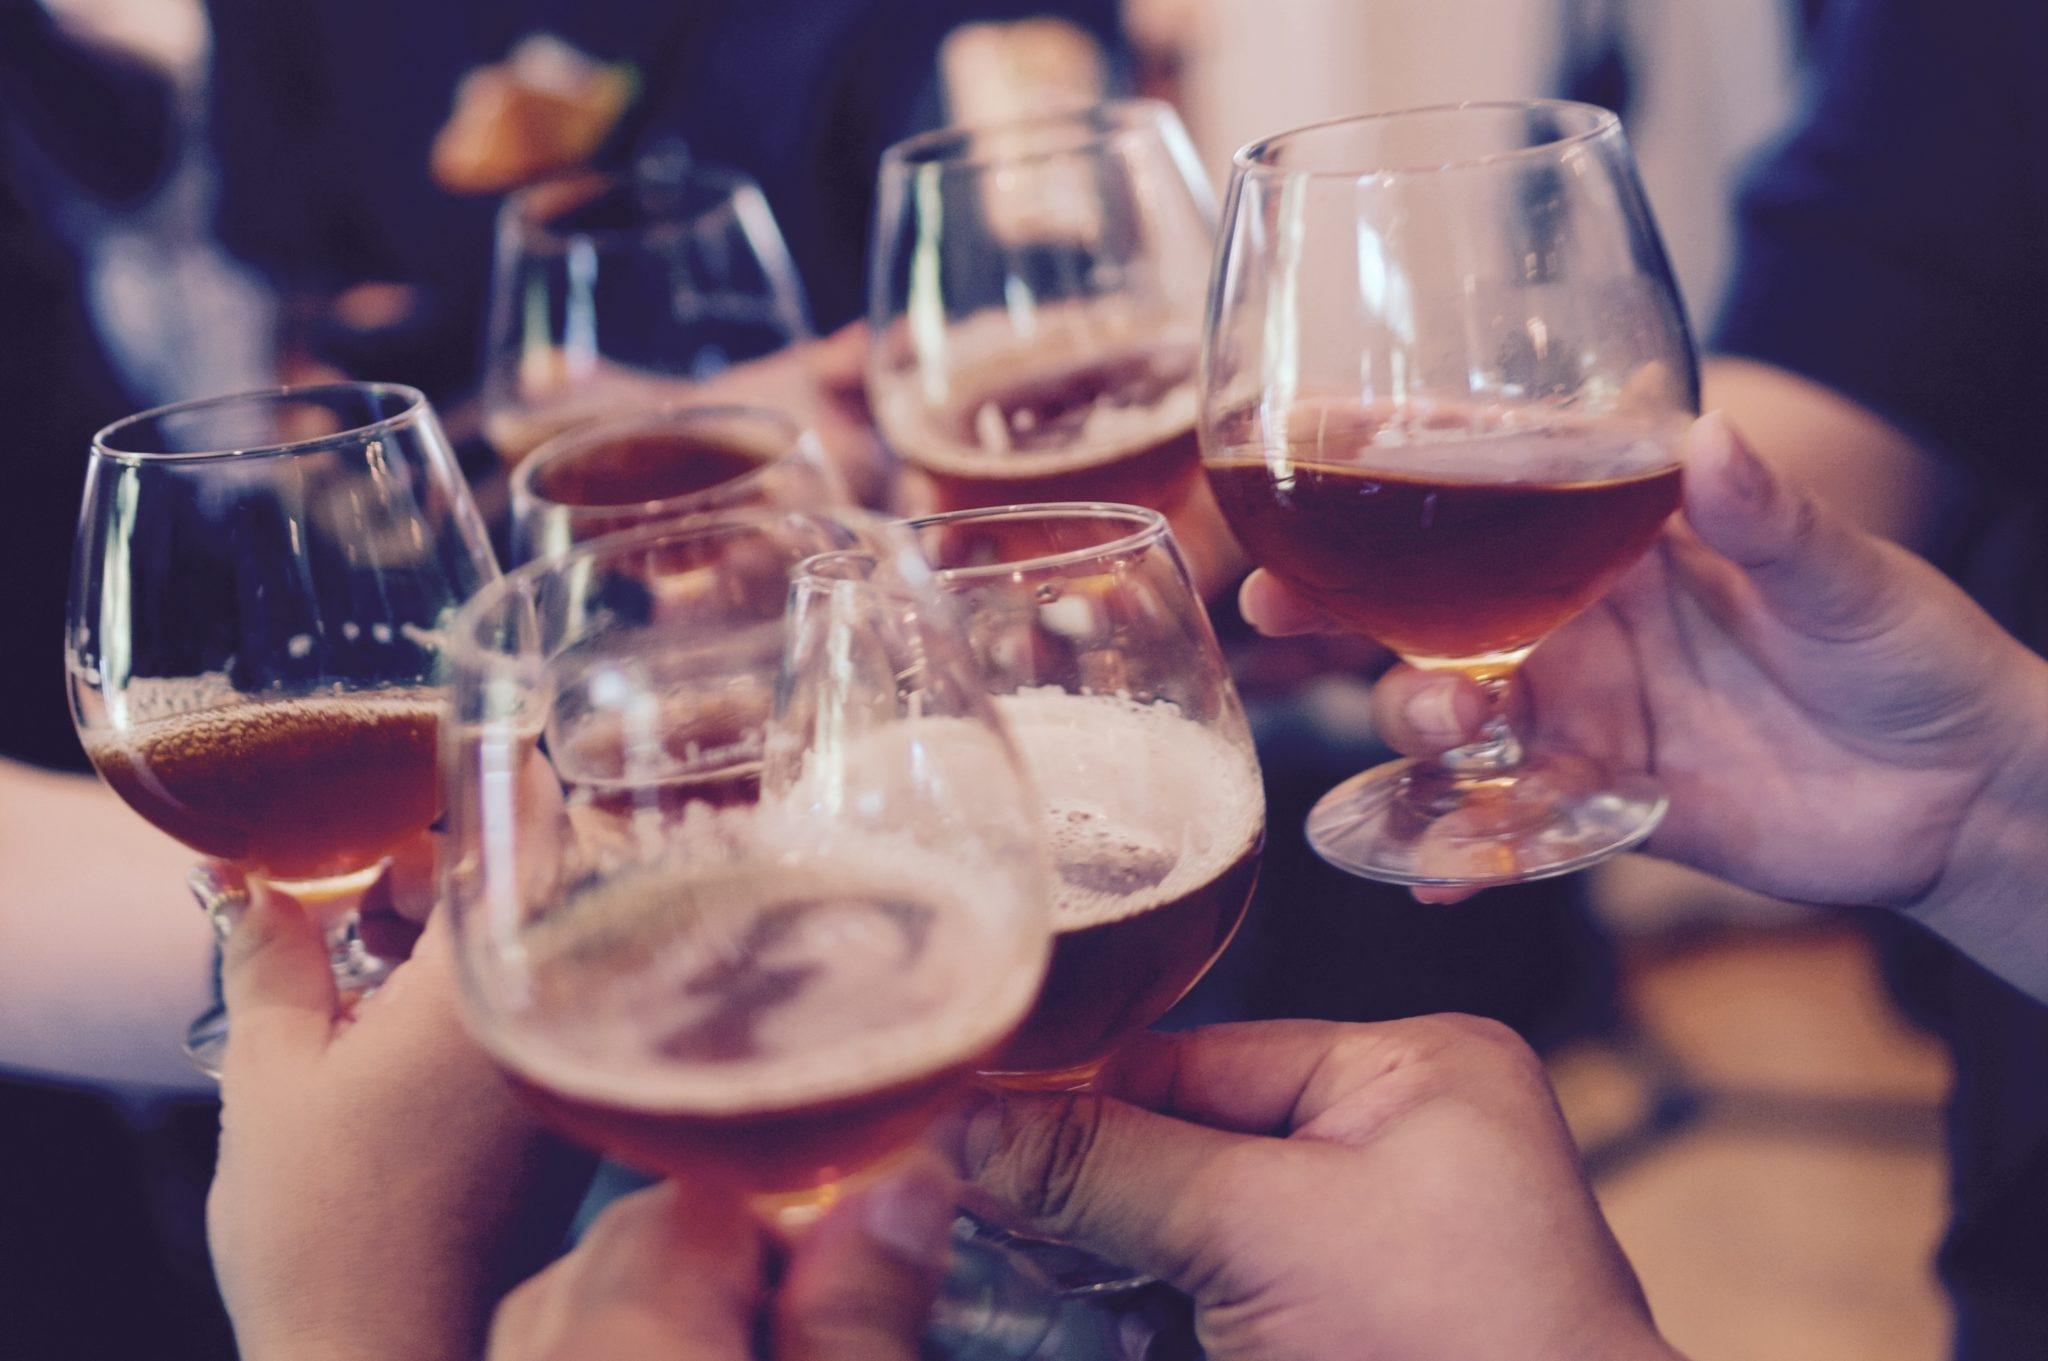 How Does A Cup Of Beer Or Glass Of Wine Affect Blood Sugar?